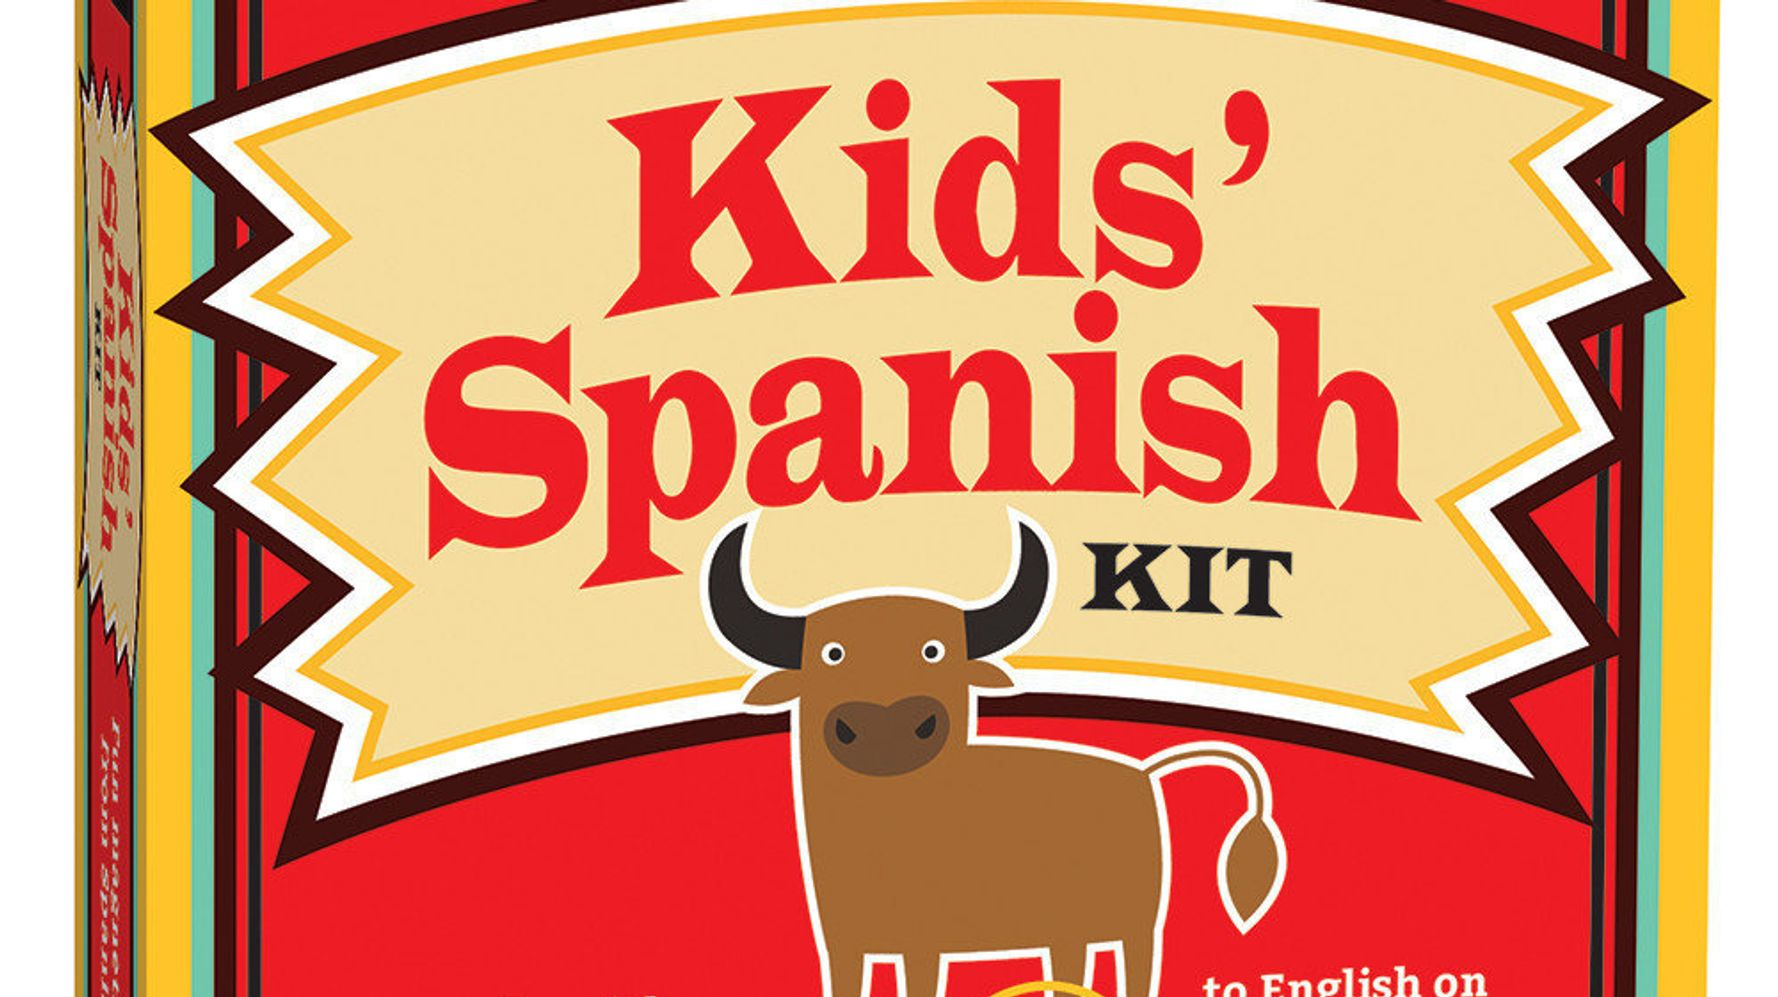 13 Gifts That Make Learning Spanish Fun For Kids | HuffPost